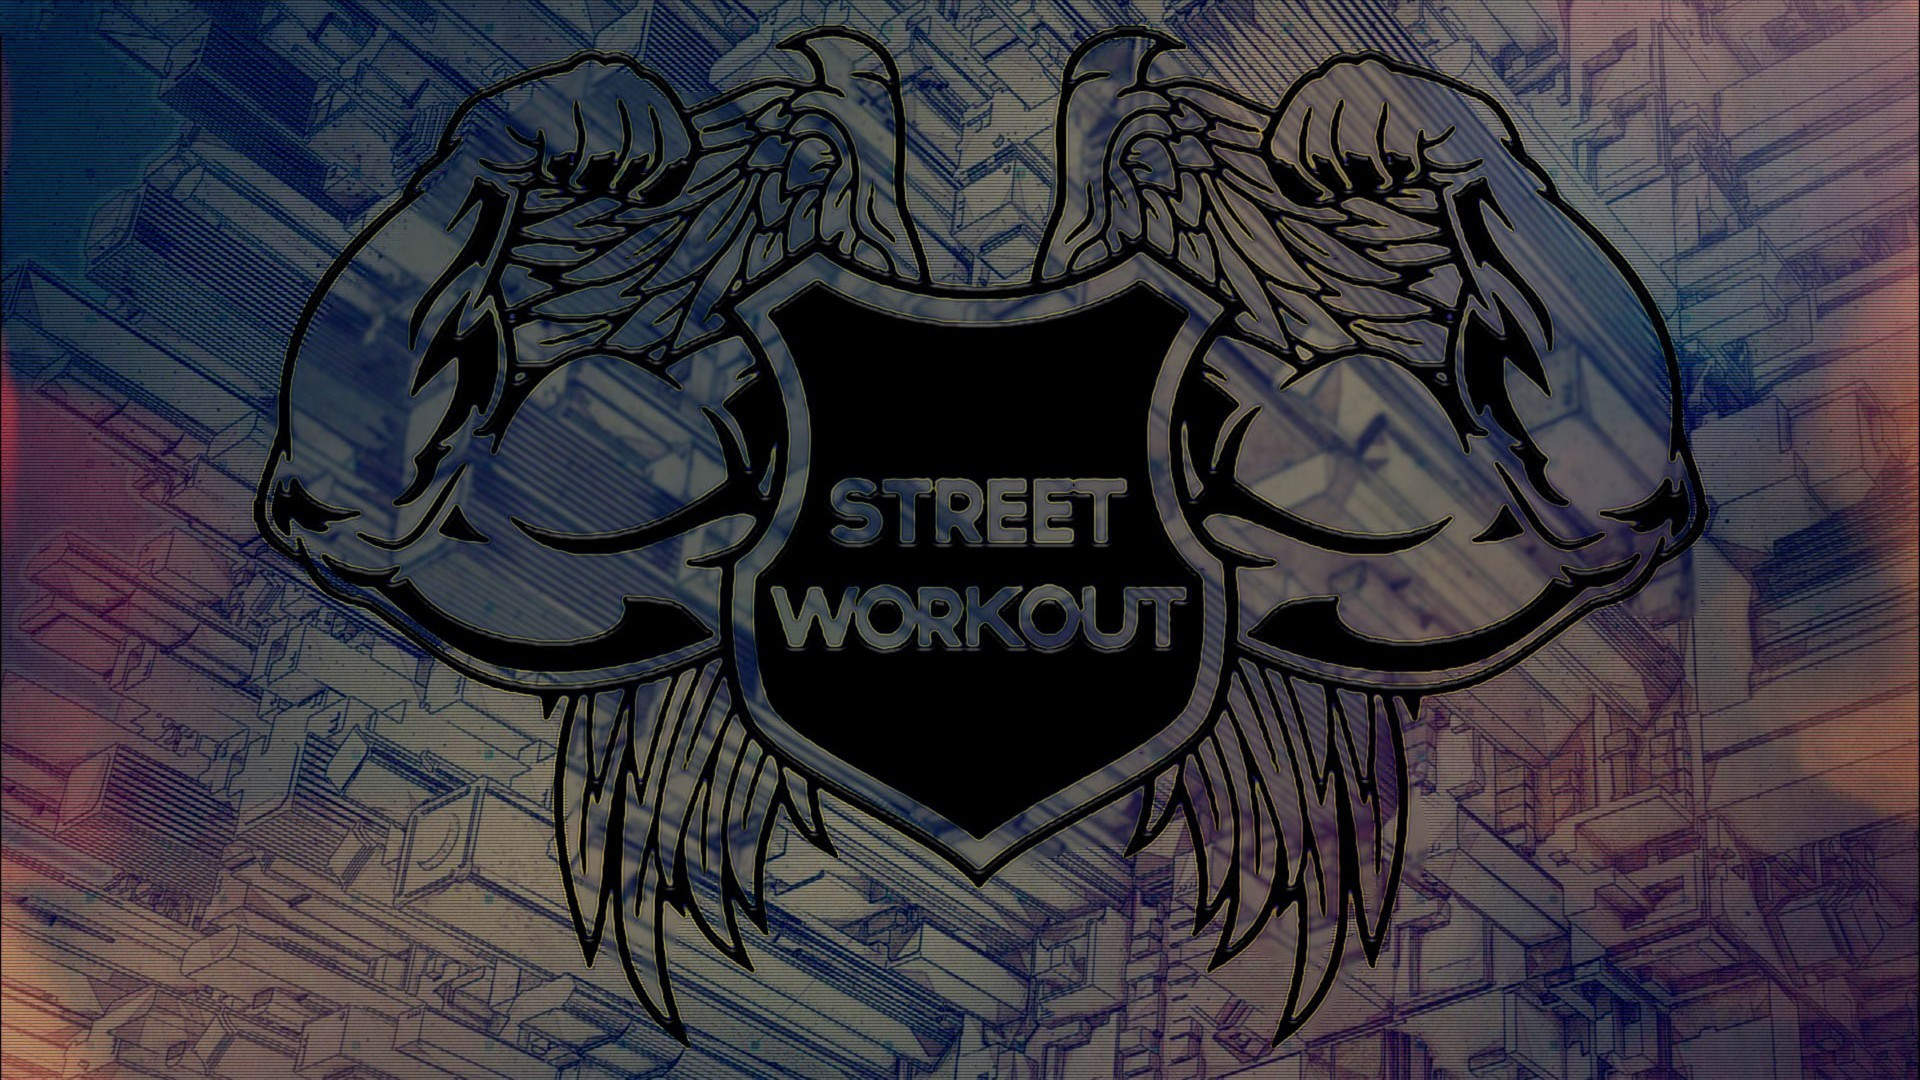 Full HD Images CollPection: Workout, by Queenie Kilgore